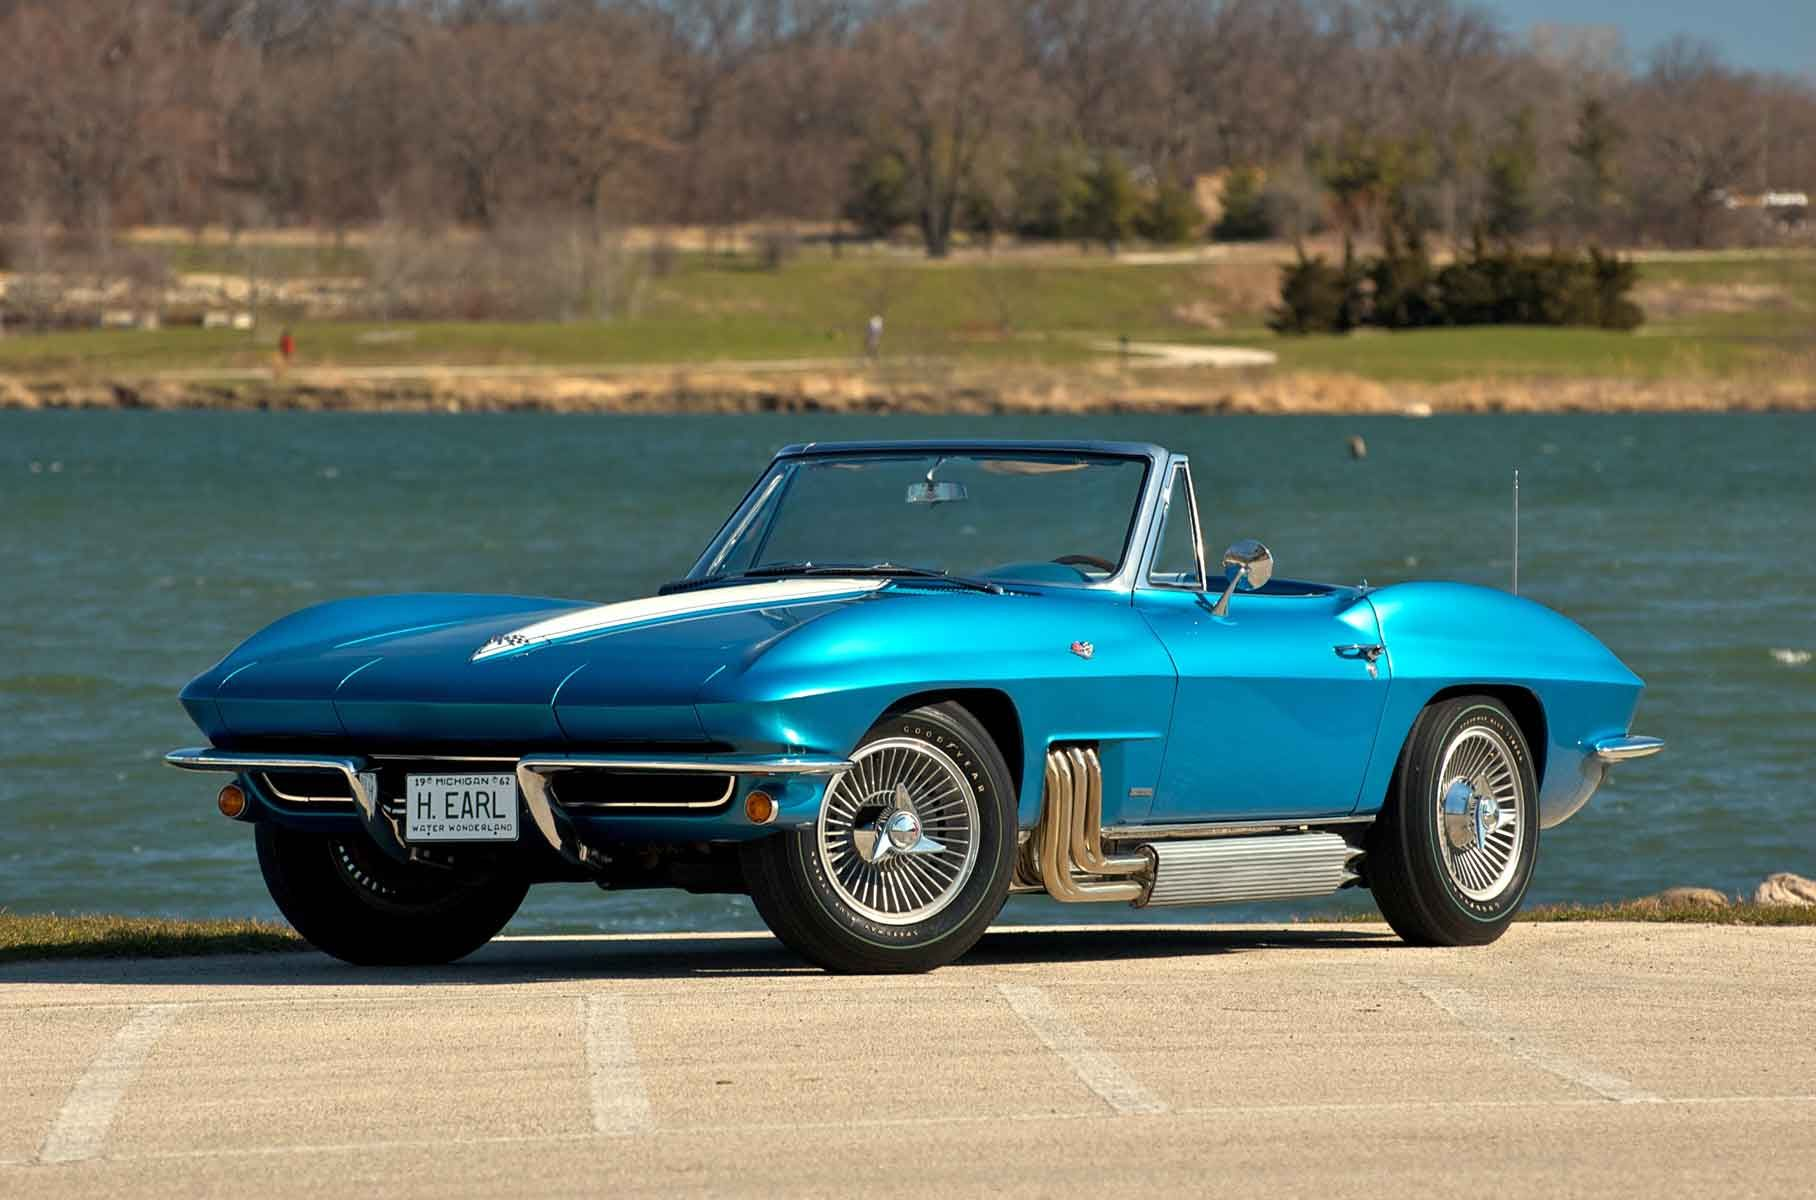 63 harley earl corvette Vettes 63 s to be Specific